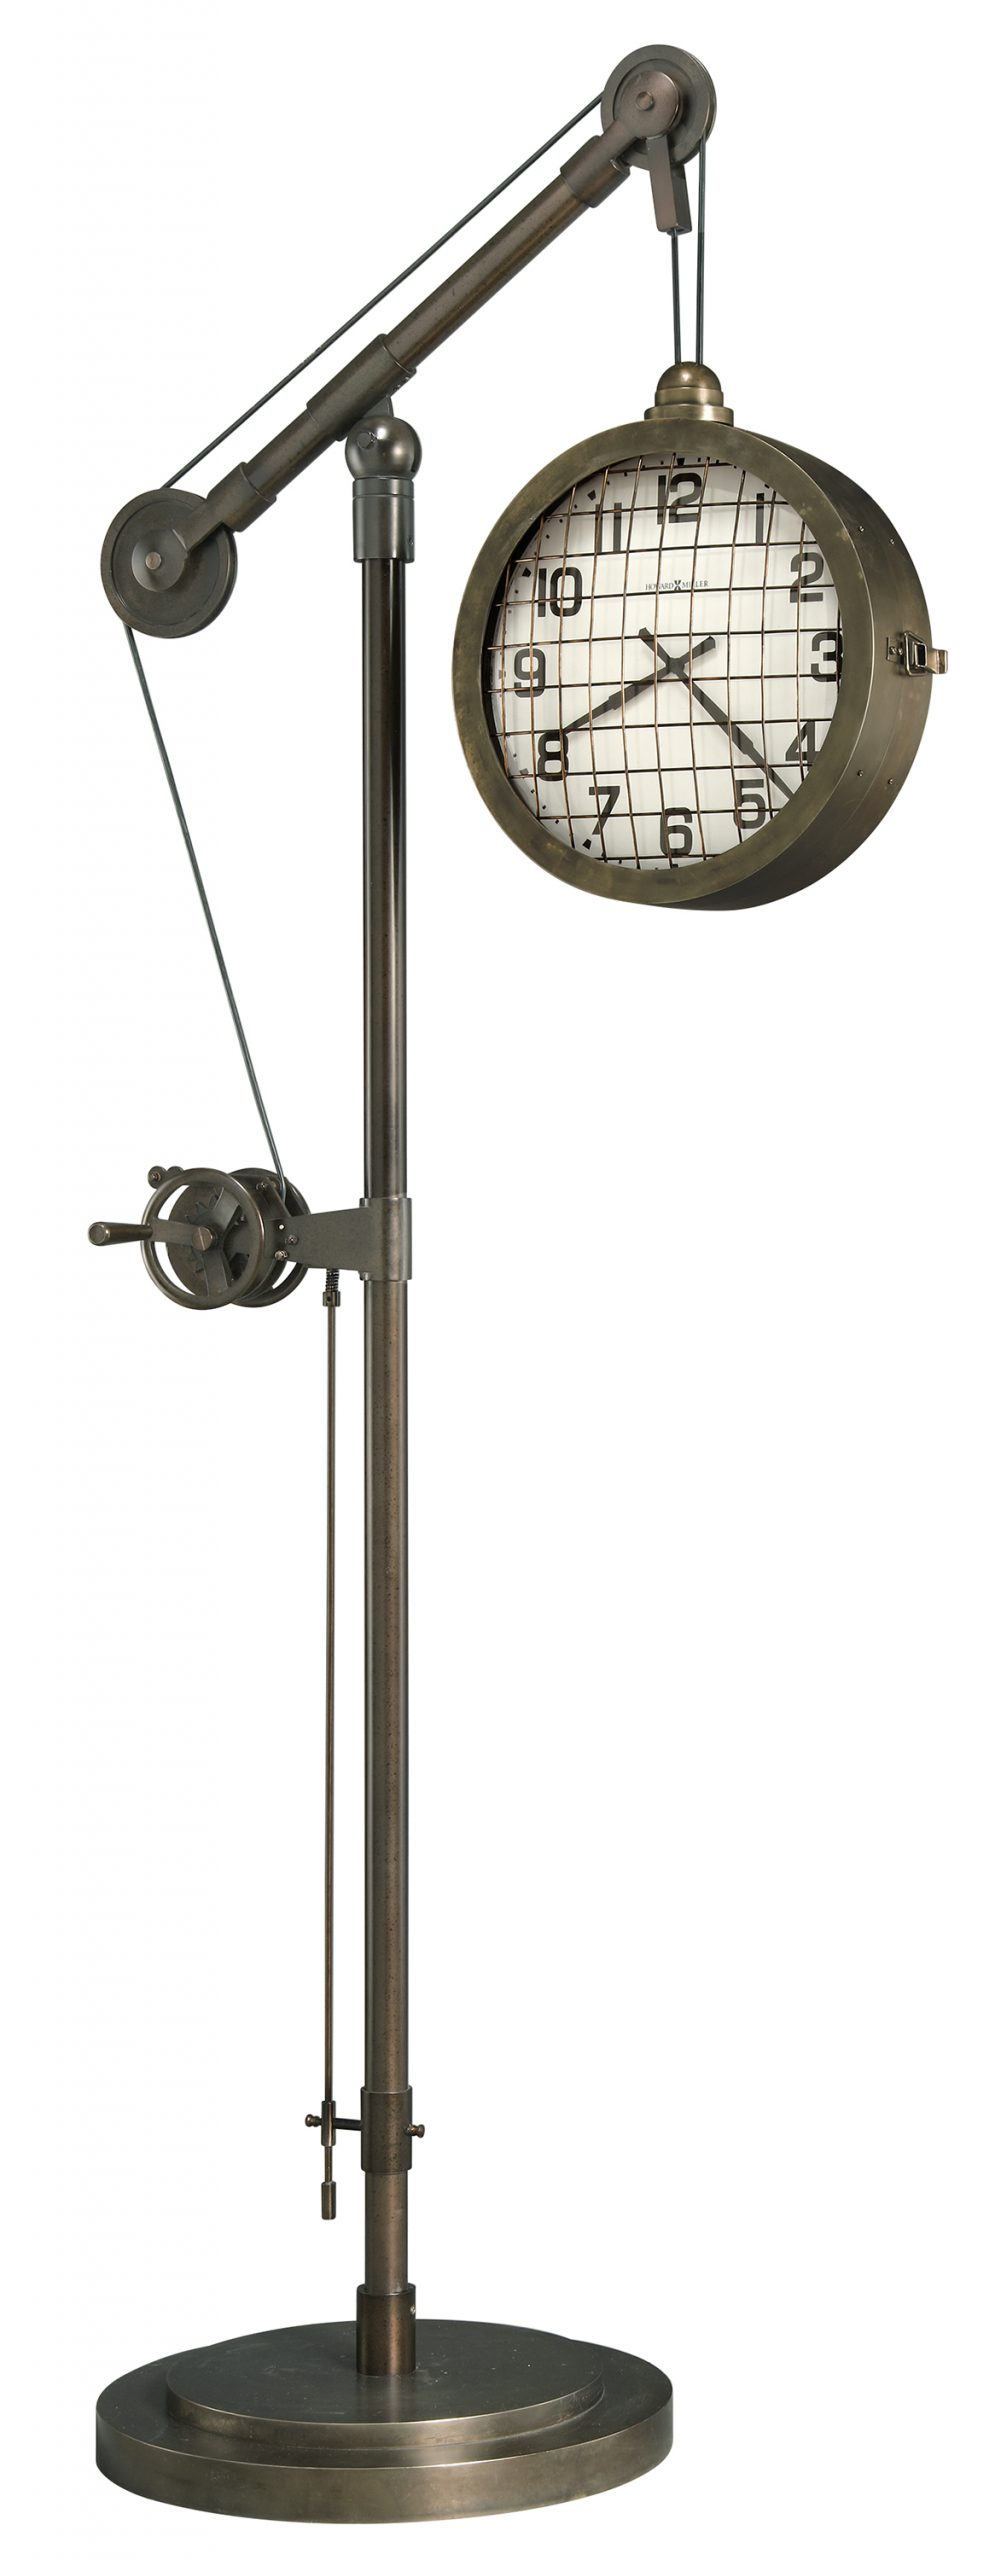 615-092 Pulley Time